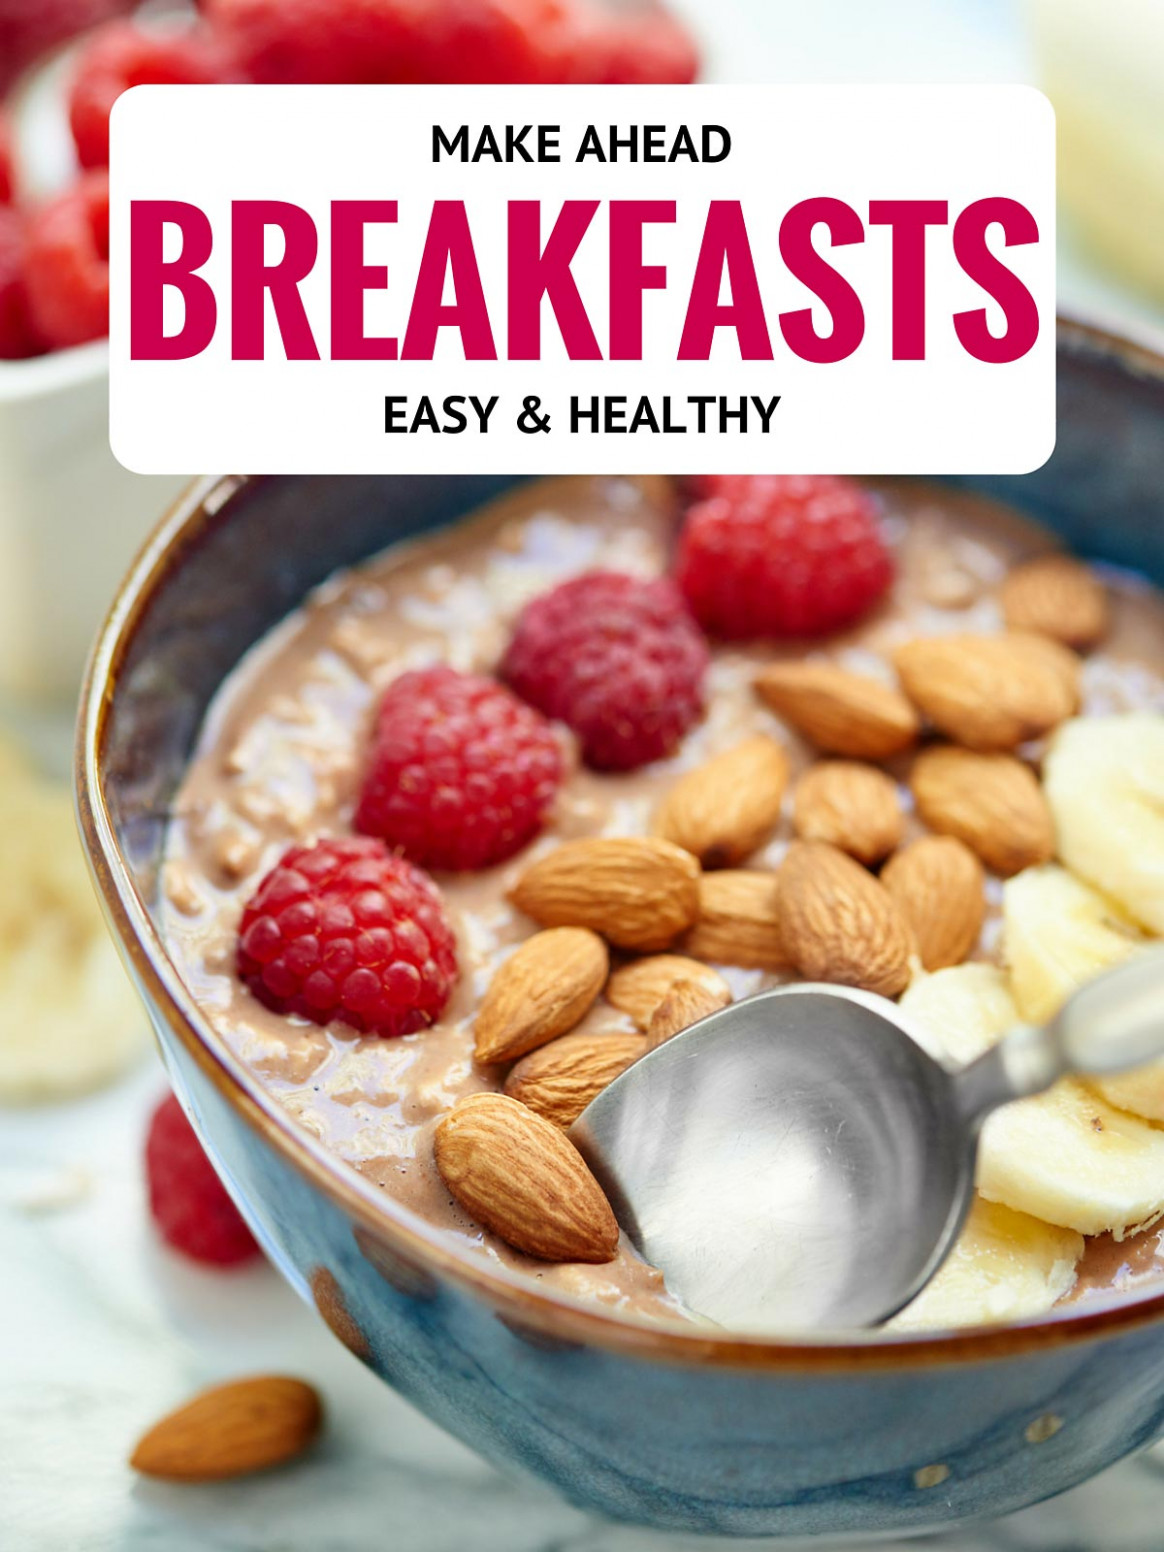 The Best Back to School Recipes 2016 - Easy, Healthy ...